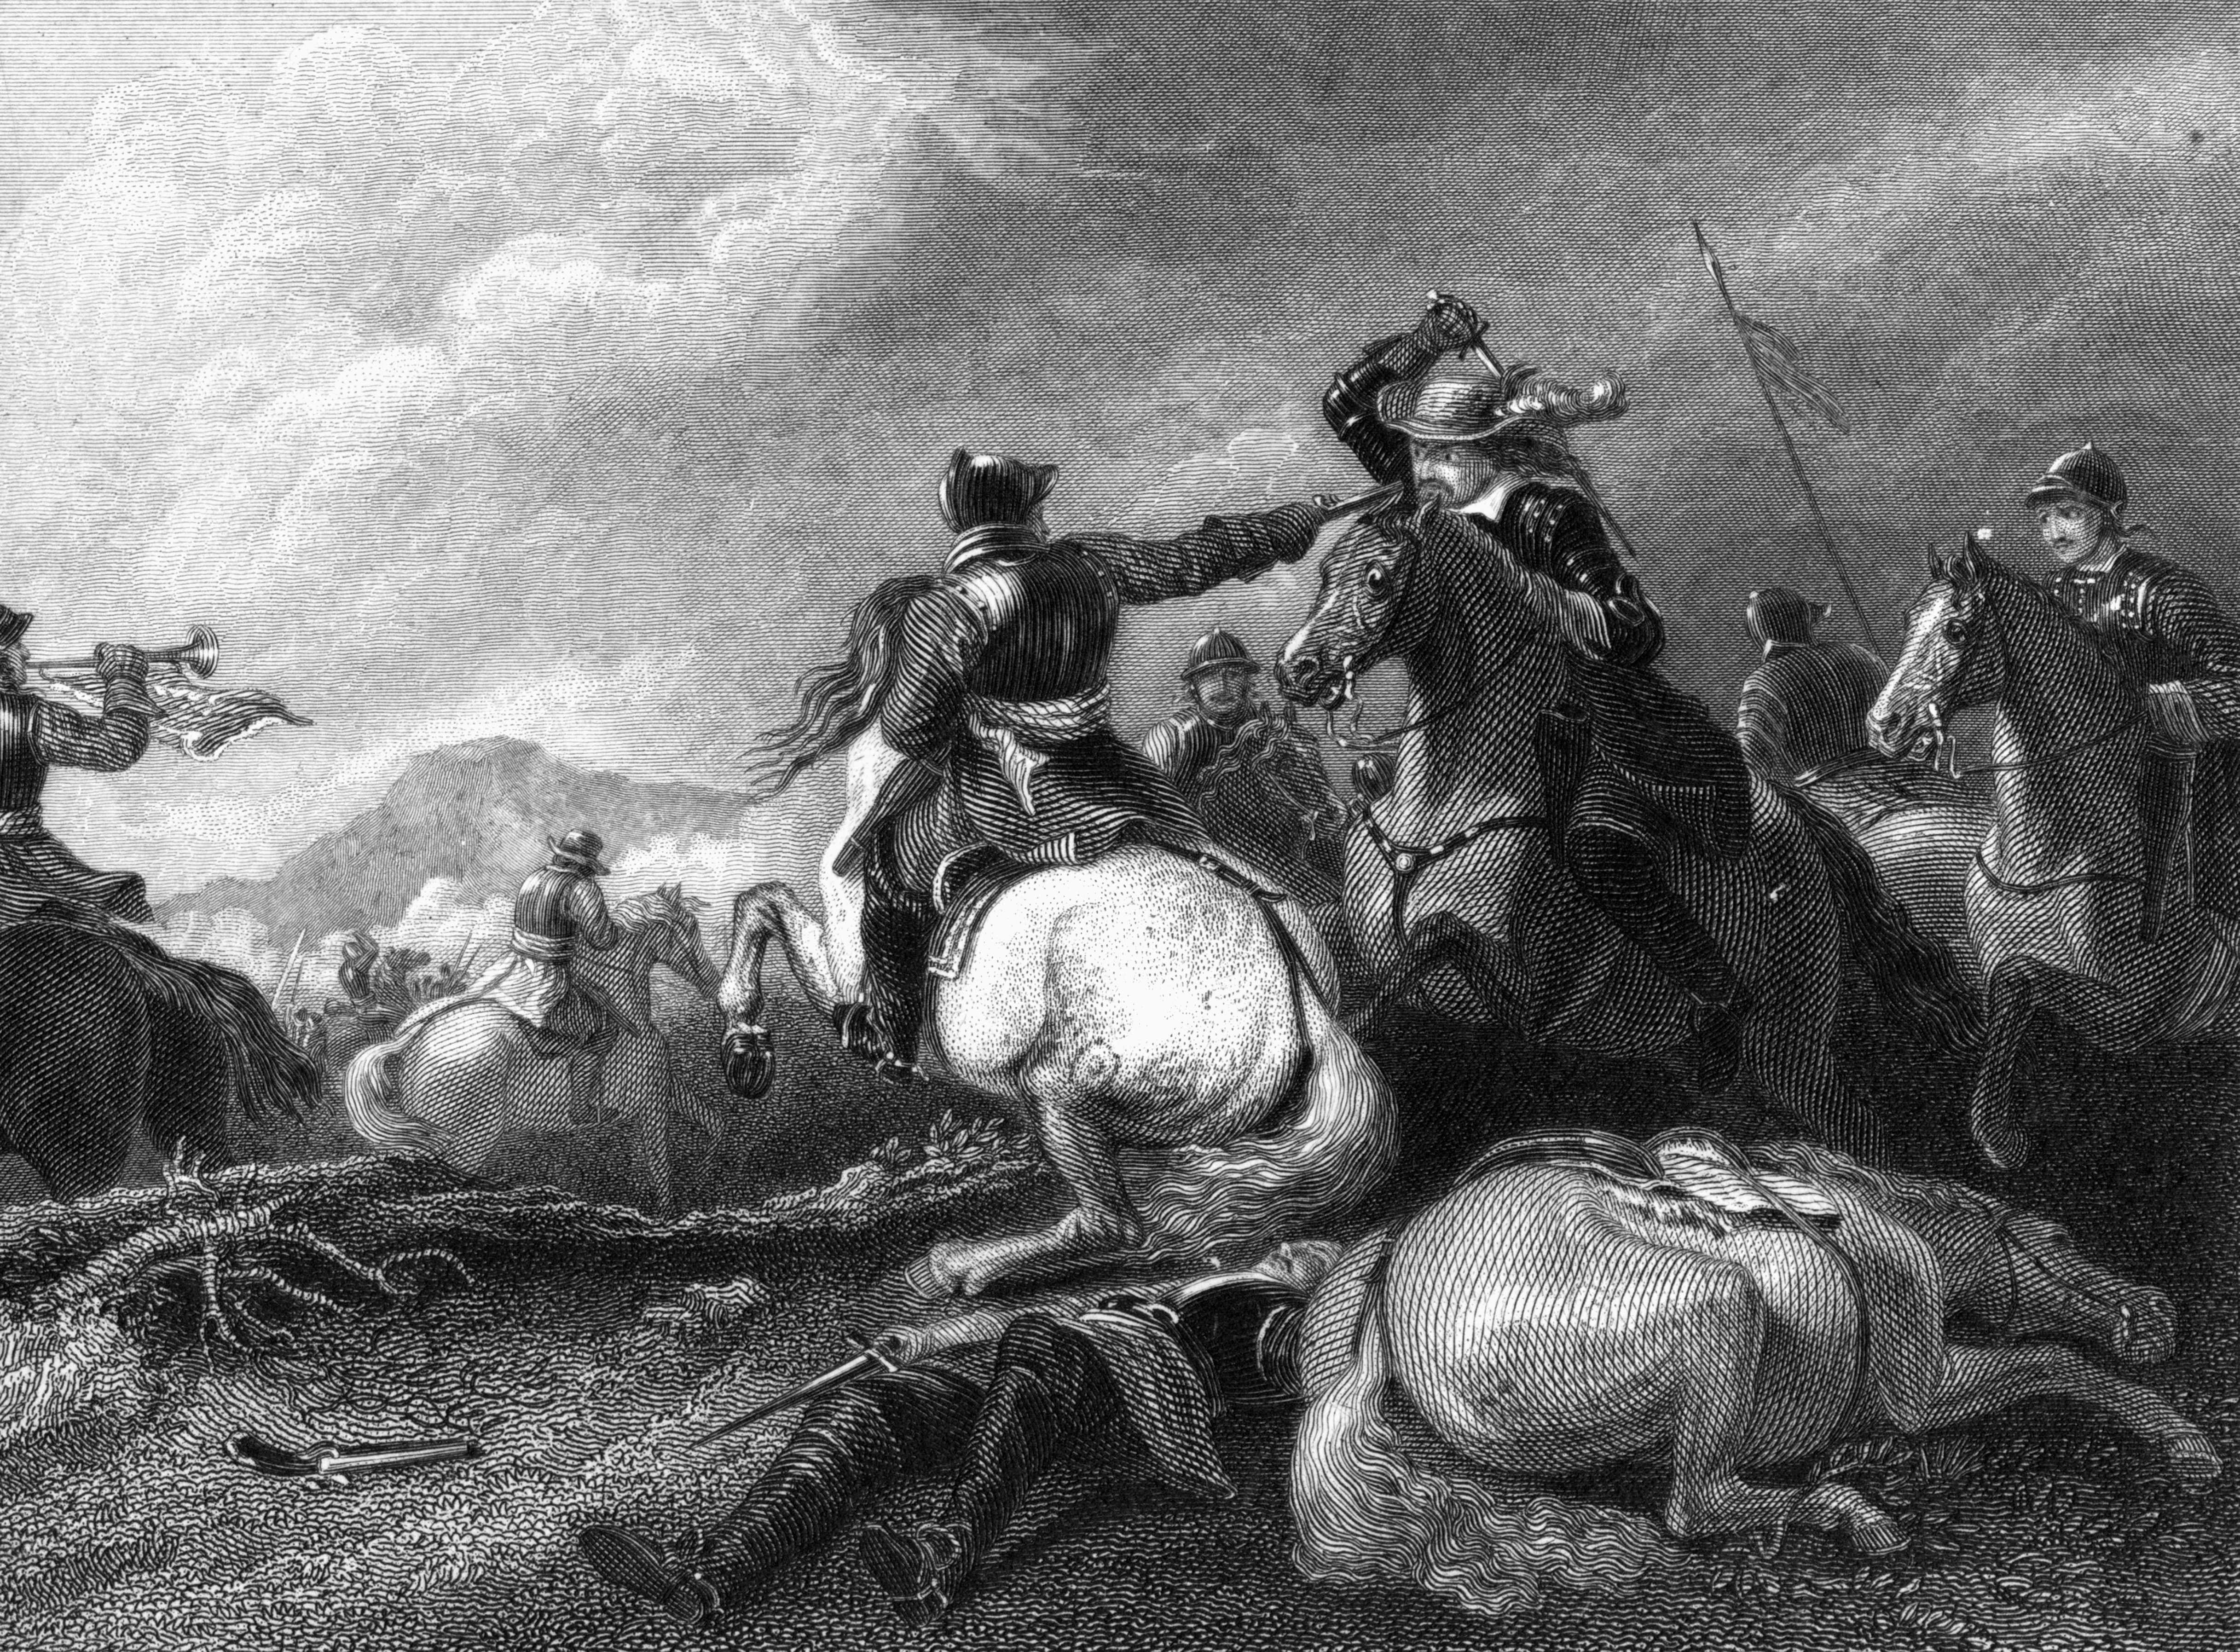 Oliver Cromwell at the battle of Marston Moor. (Photo by The Print Collector/Print Collector/Getty Images)